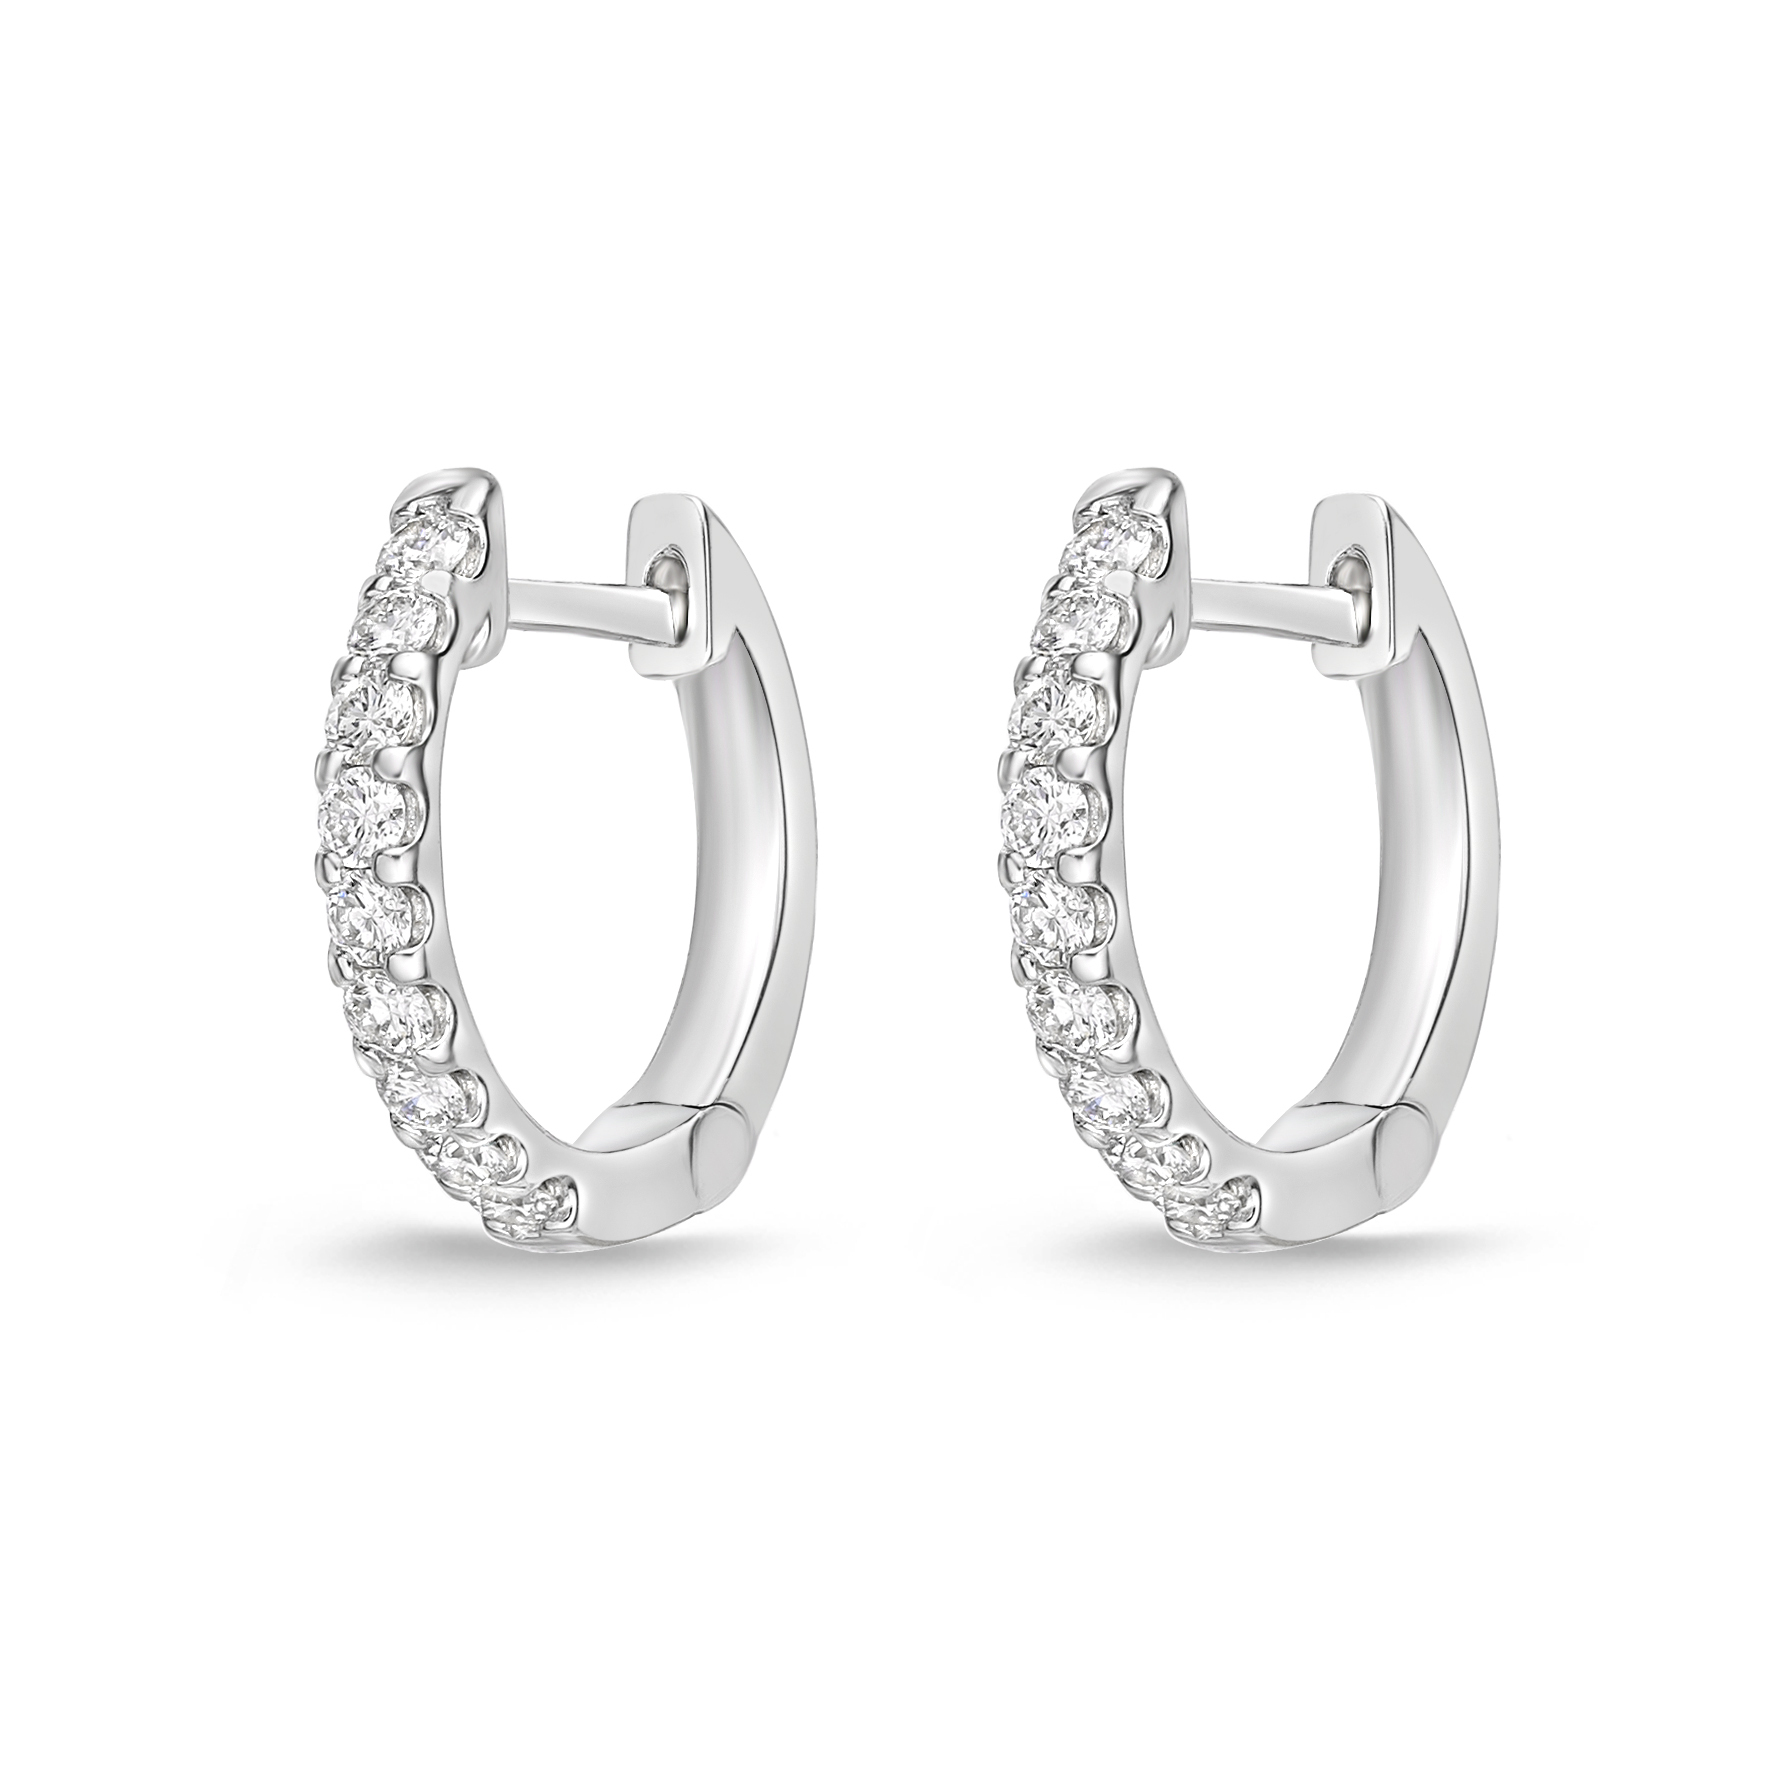 Memoire 18ct White Gold 1/4 Carat Diamond Huggies 12x12mm